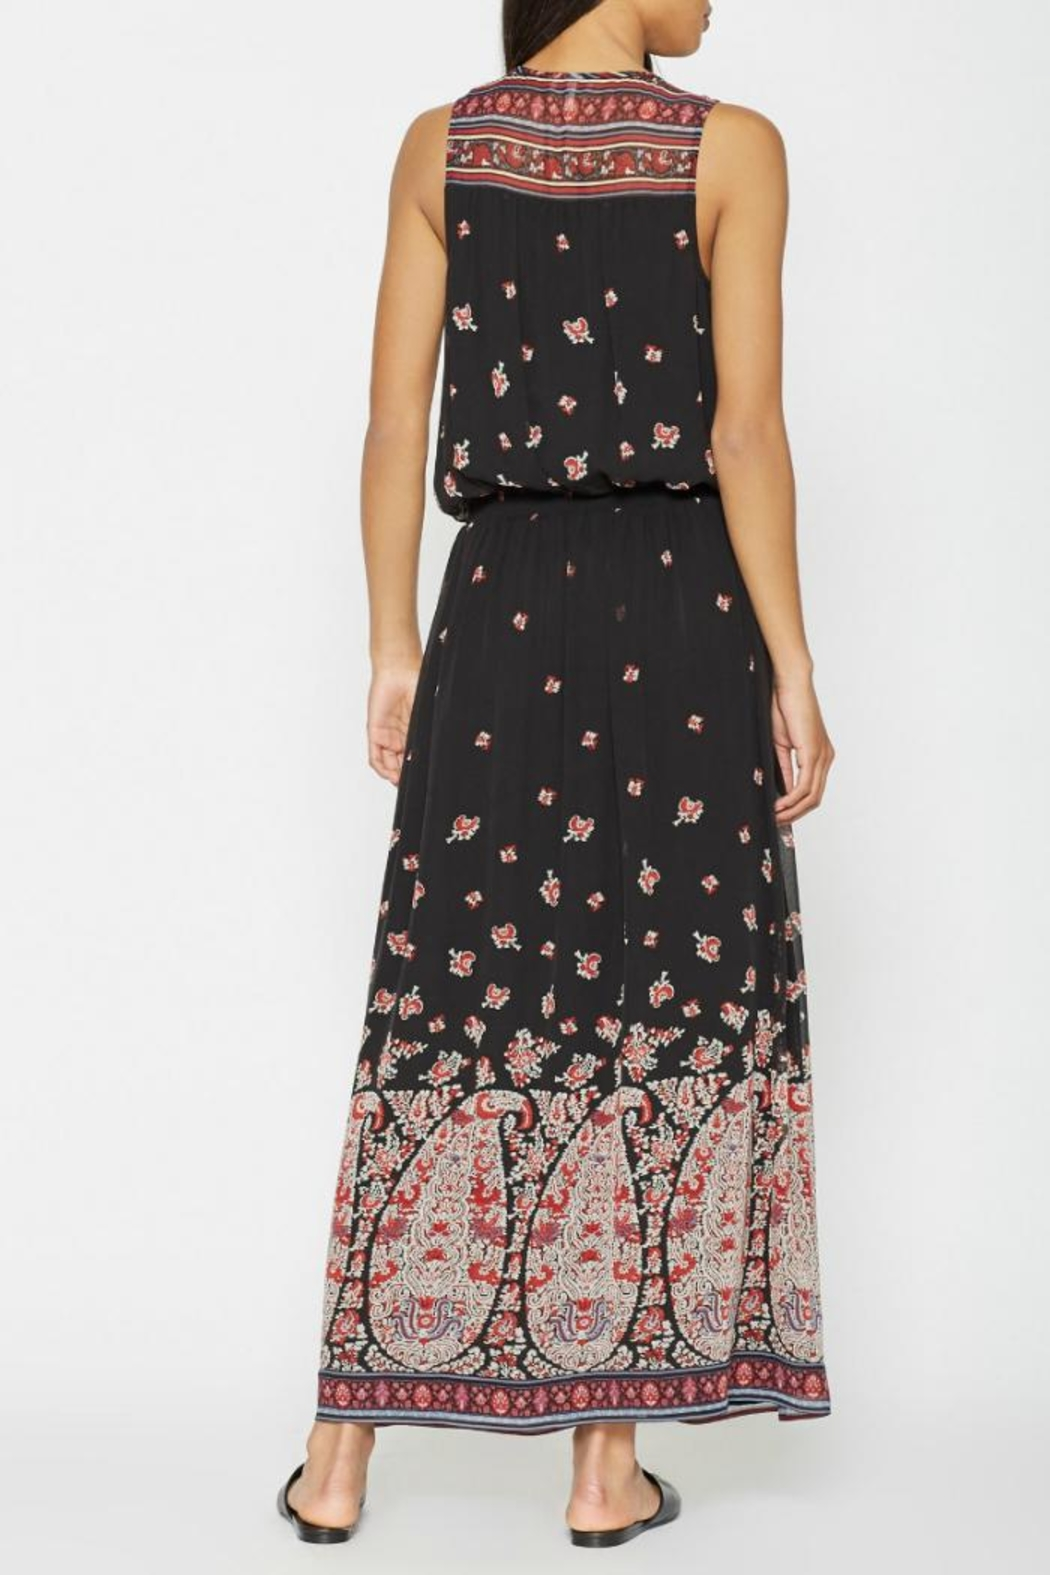 Joie Phanette Silk Dress - Side Cropped Image